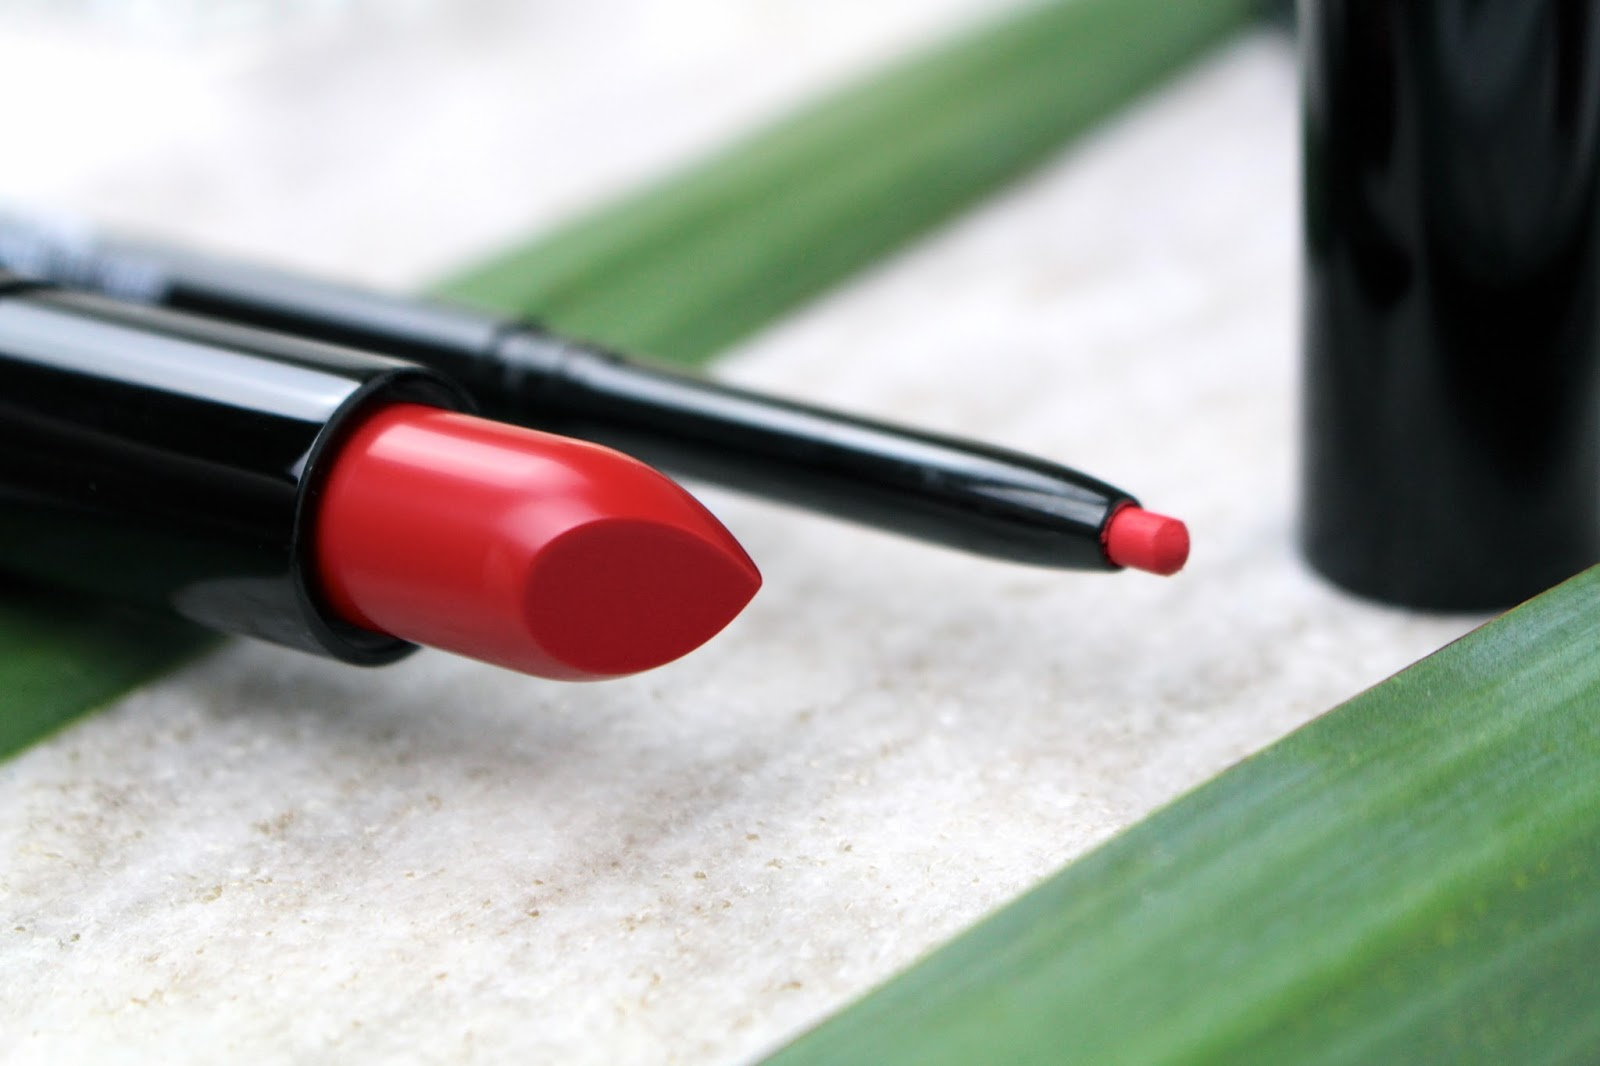 Mii Cosmetics bright red lipstick and matching lip liner